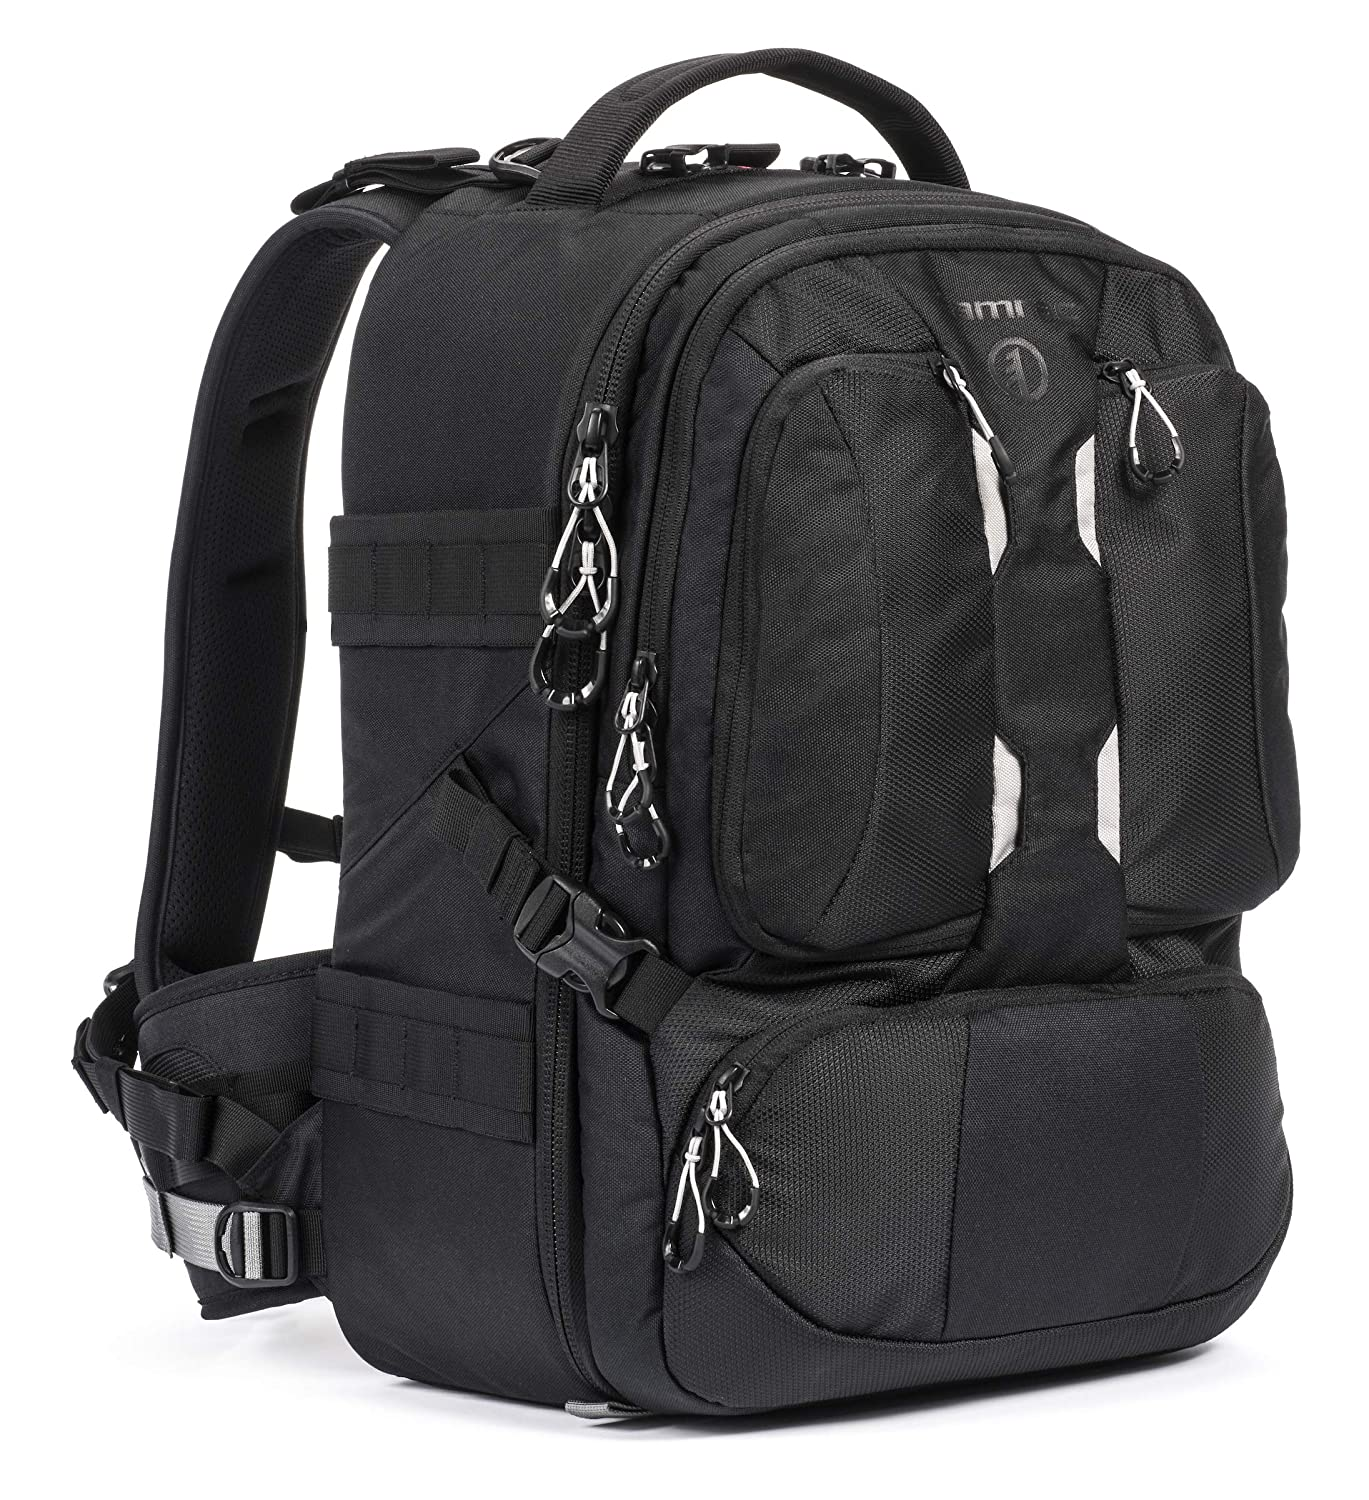 Tamrac Anvil 17 Backpack for DSLR Camera